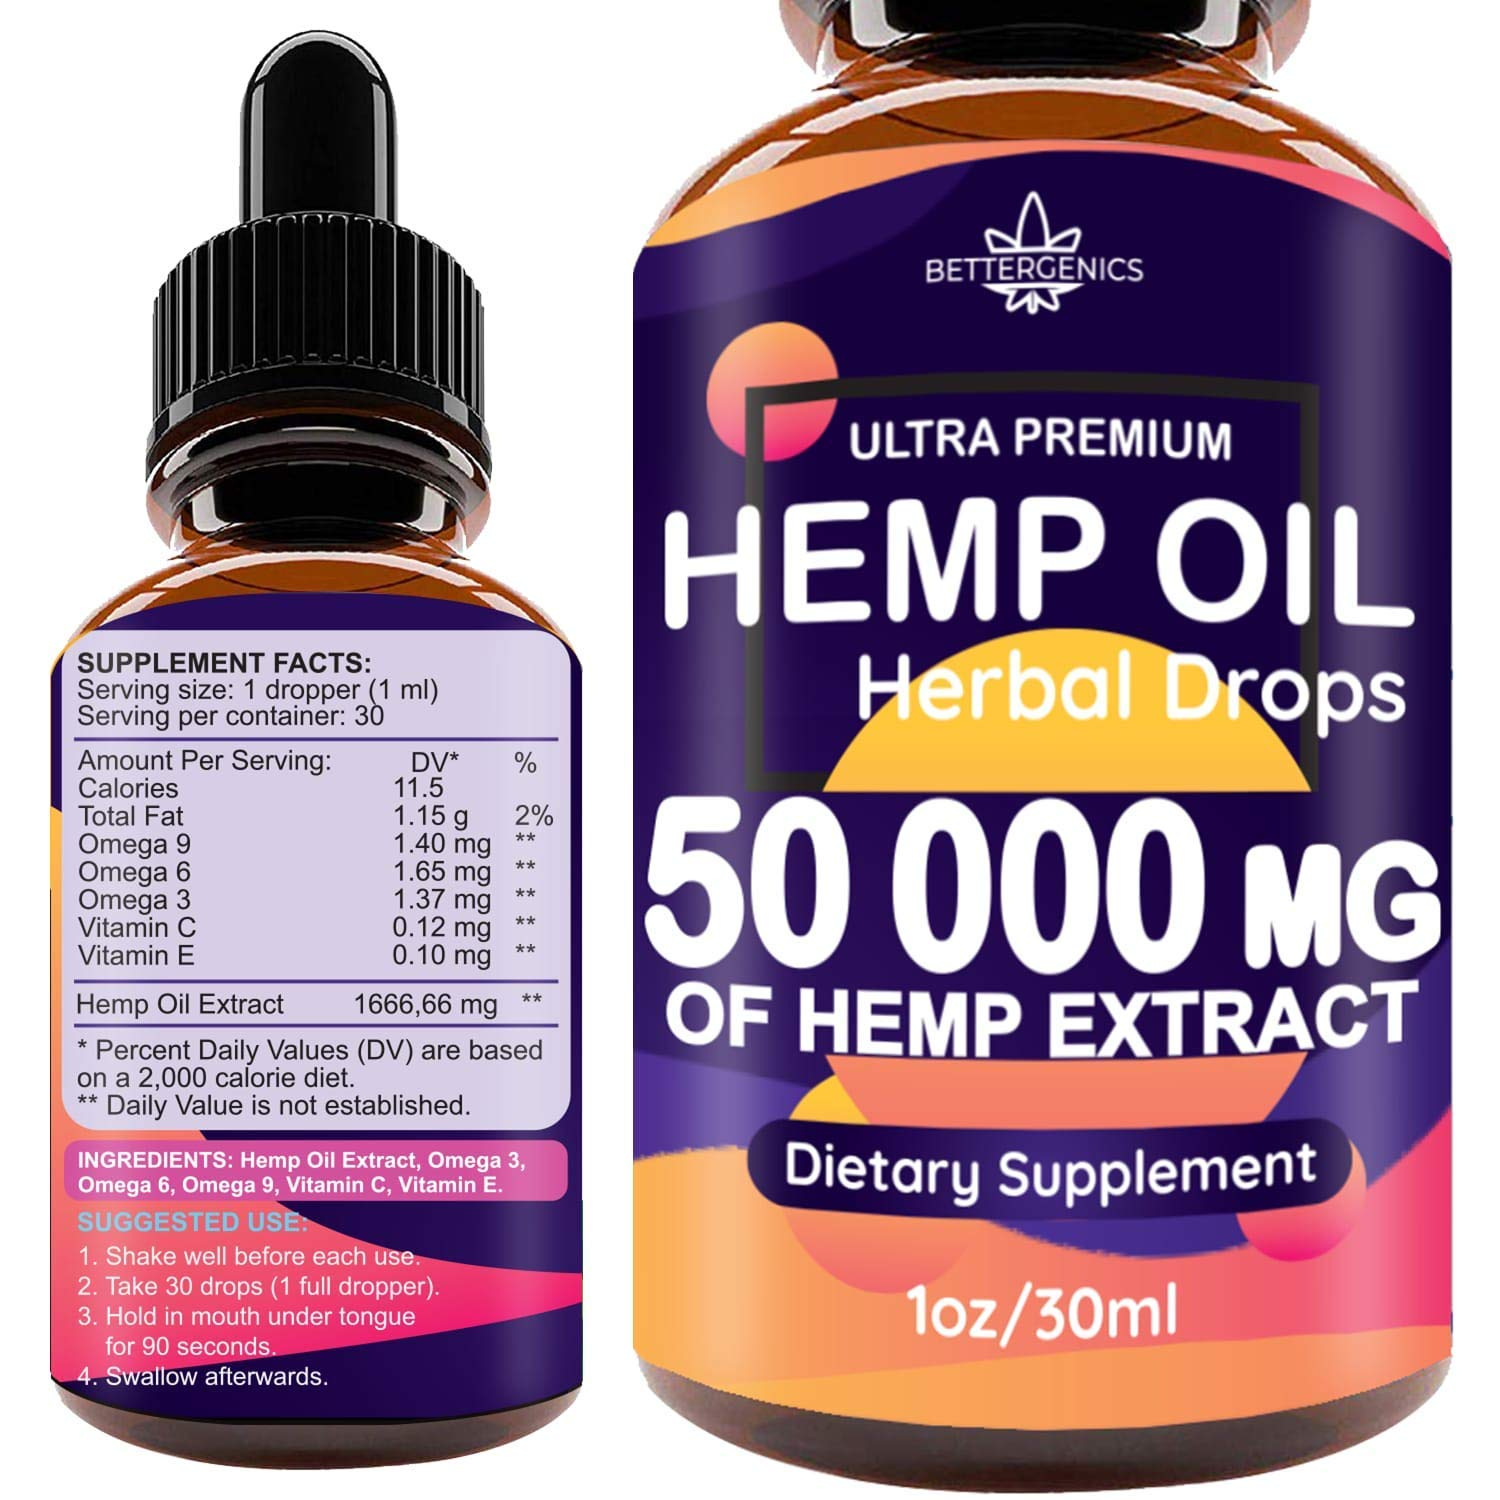 Hemp Oil Drops 50 000 mg, Co2 Extracted, Help Cope With Stress, Anxiety and Pain, 100% Natural Ingredients, Vegan Friendly, GMO Free, Made in USA by Hemp-Health